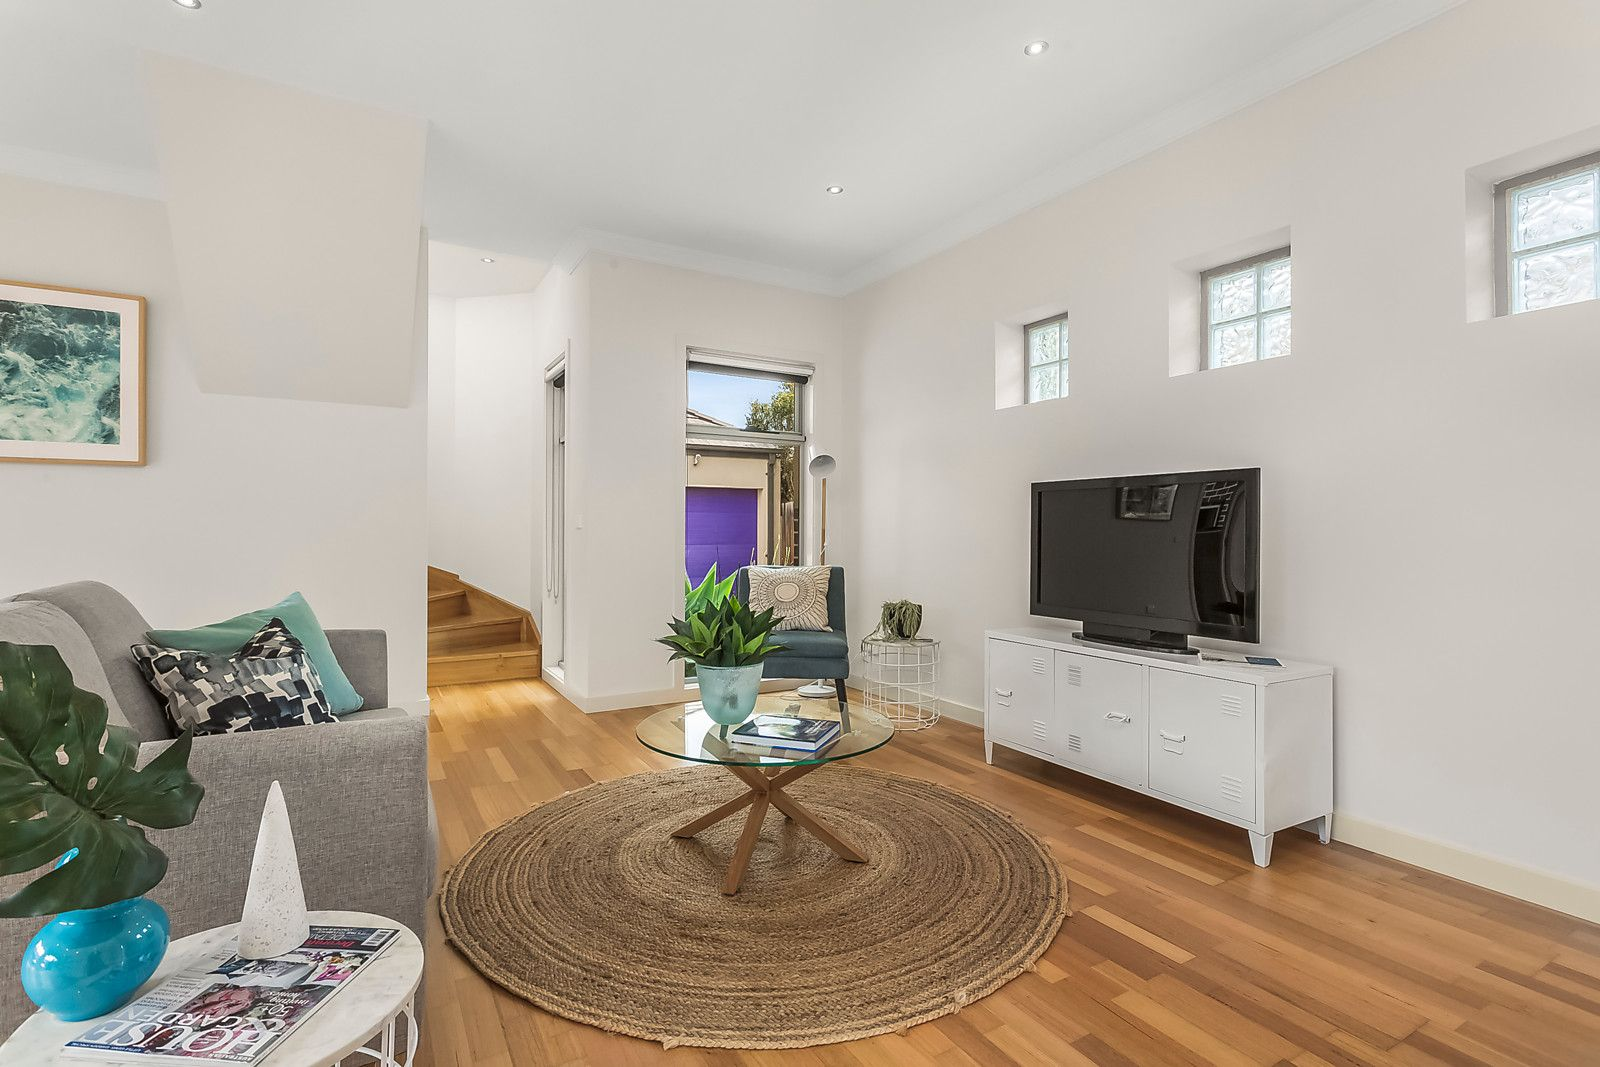 2/51 Roland Avenue, Strathmore VIC 3041, Image 2